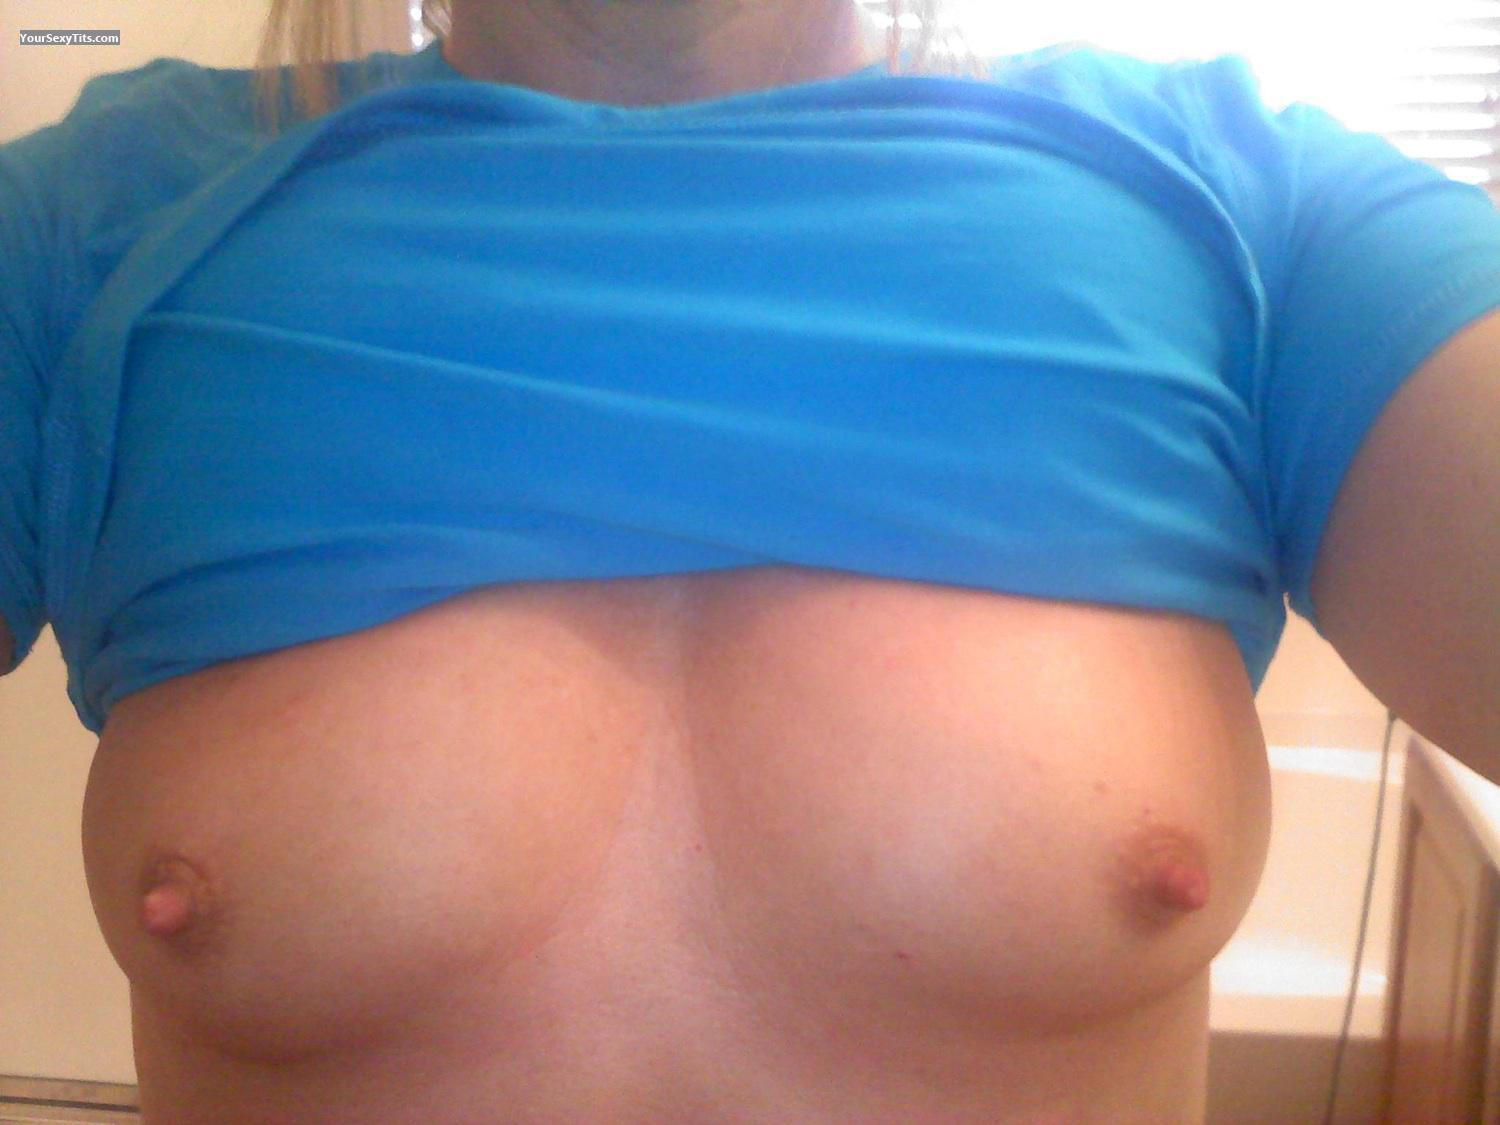 Tit Flash: My Small Tits (Selfie) - AZ from United States